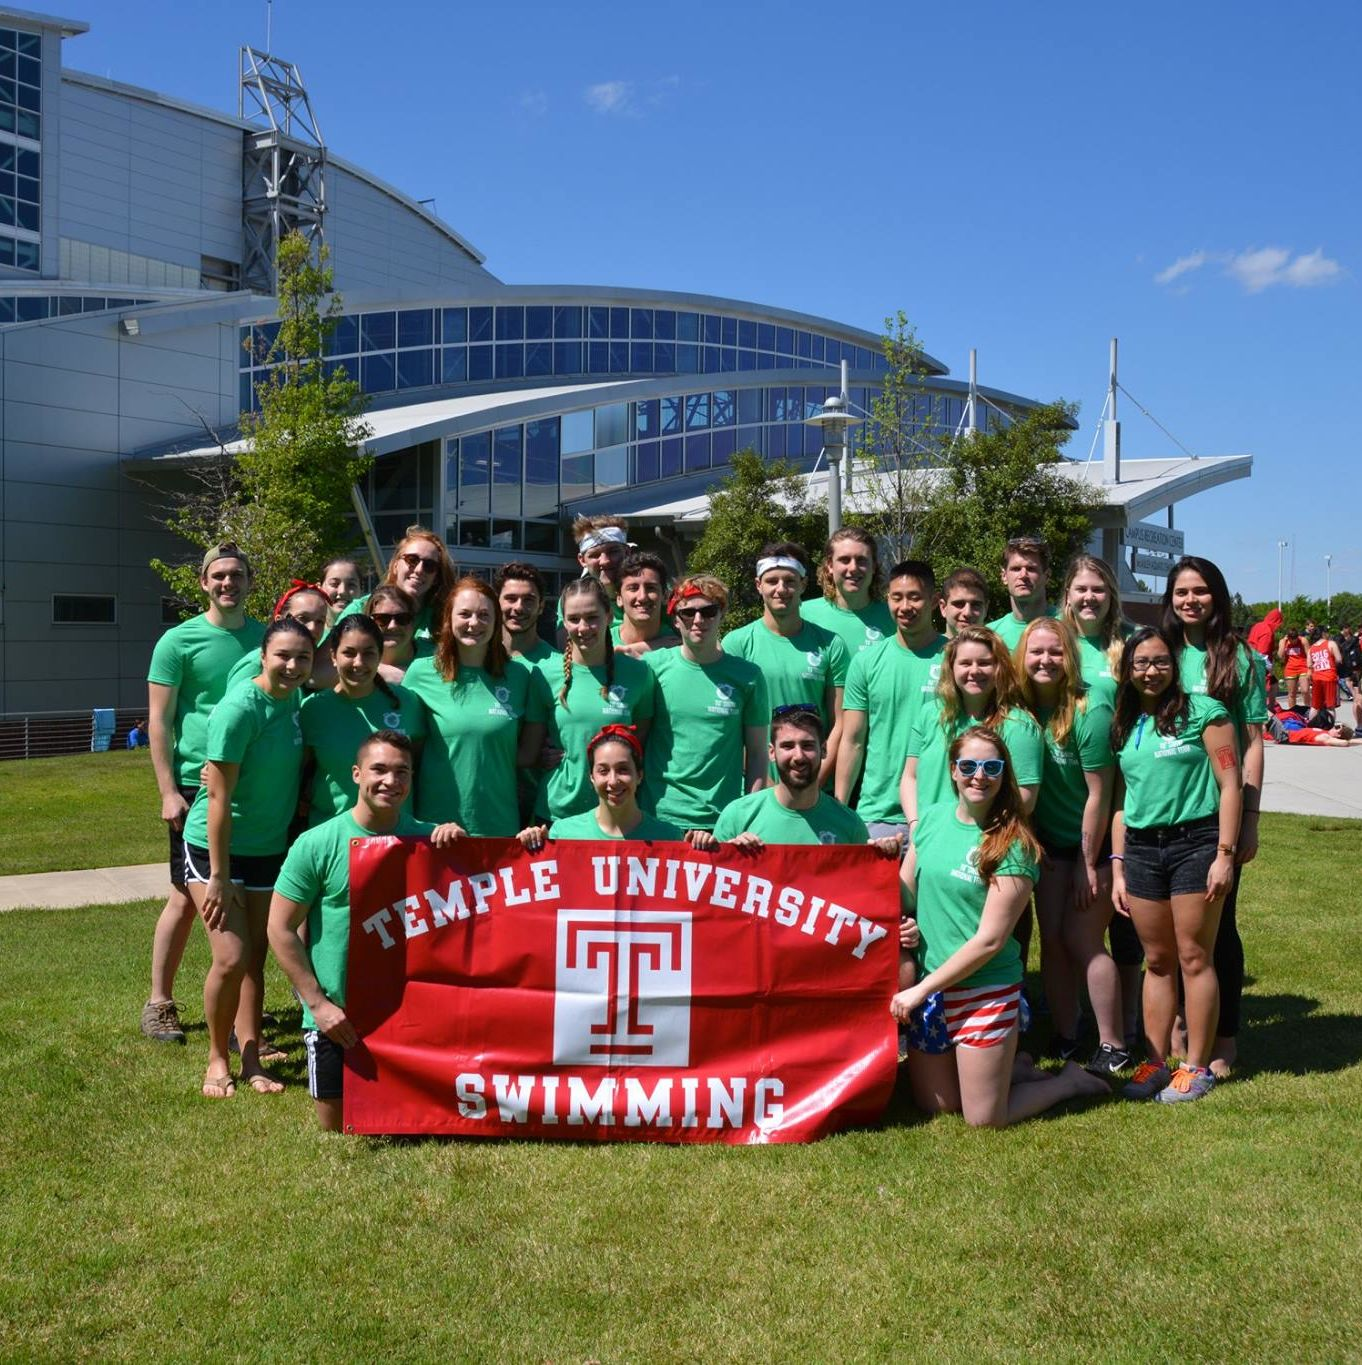 Temple University Swimming Club team picture at Nationals